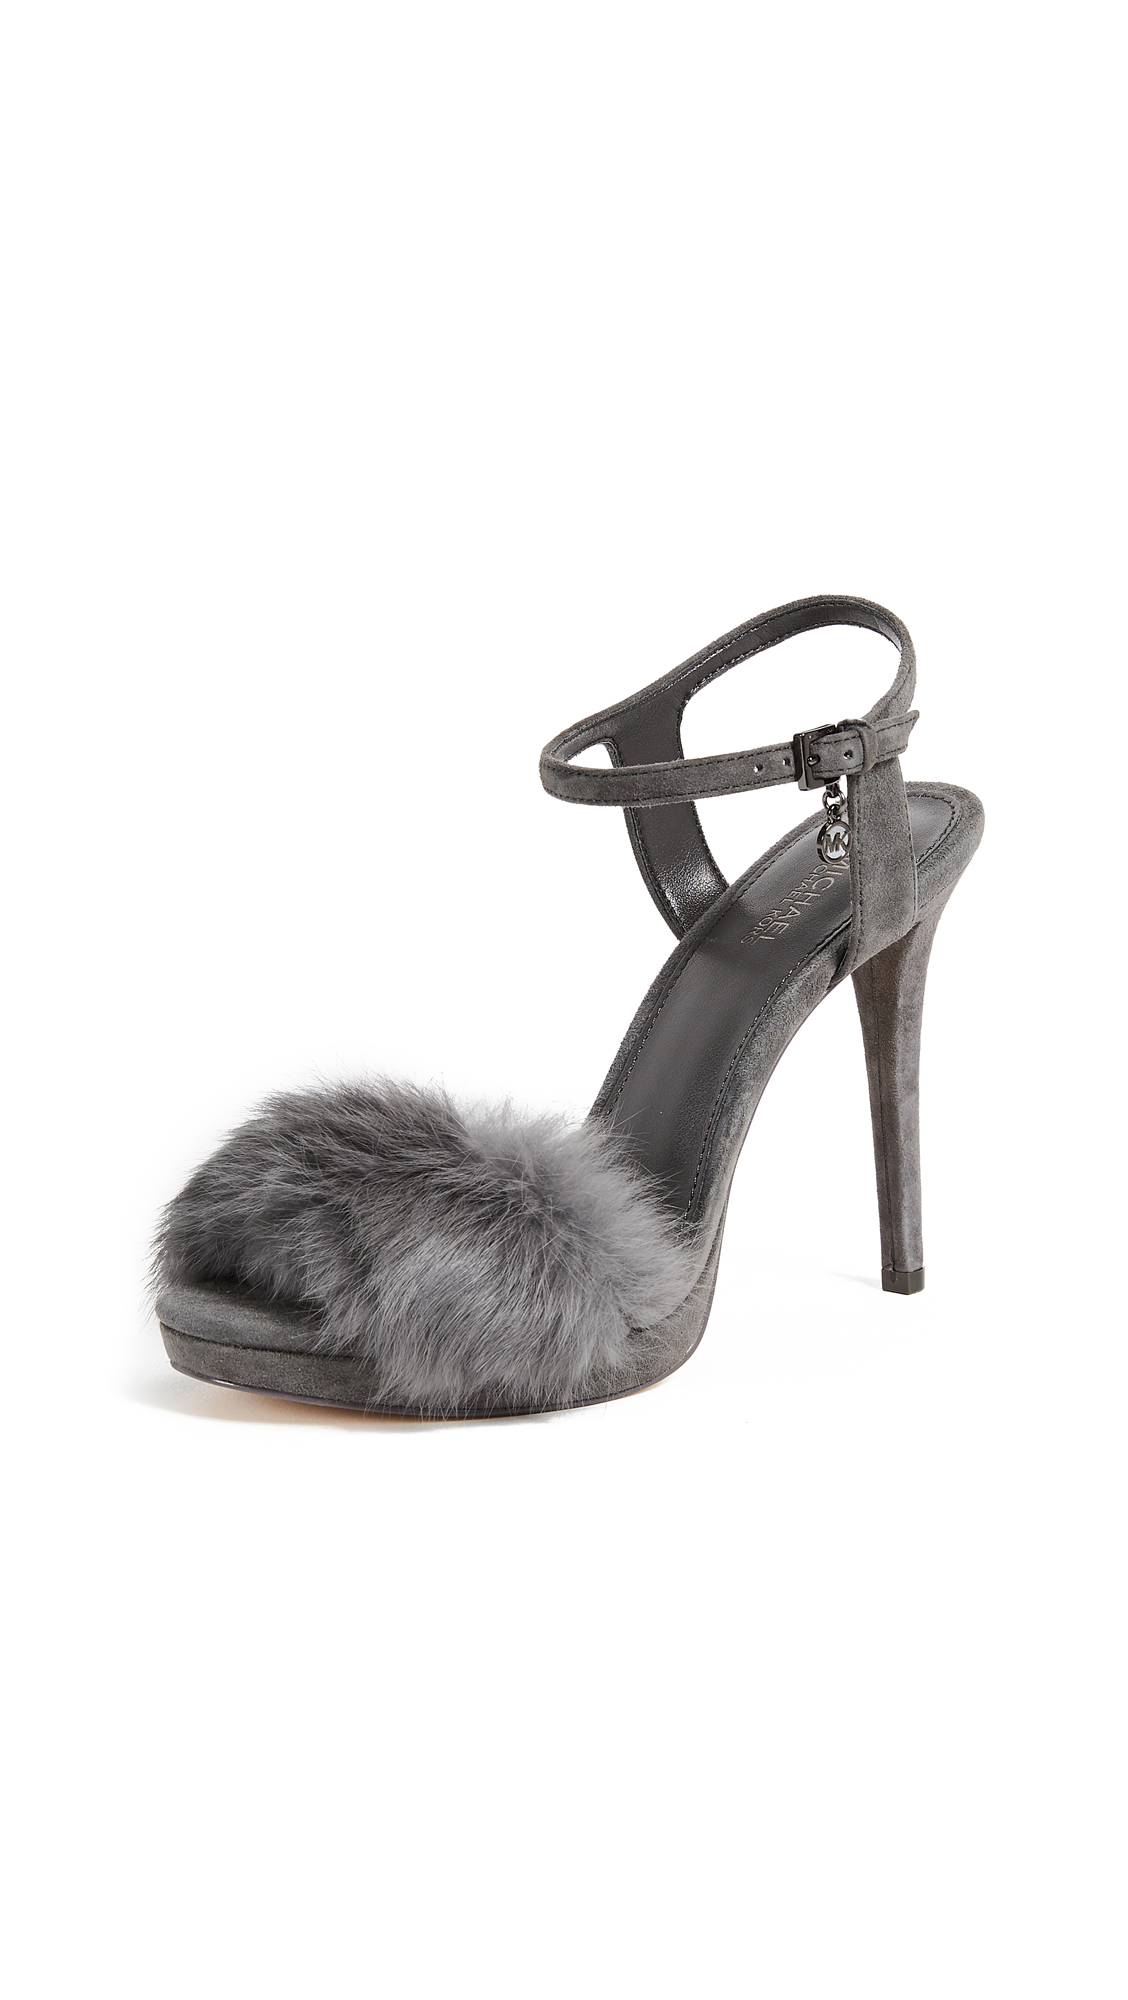 MICHAEL Michael Kors Faye Fur Sandals - Charcoal